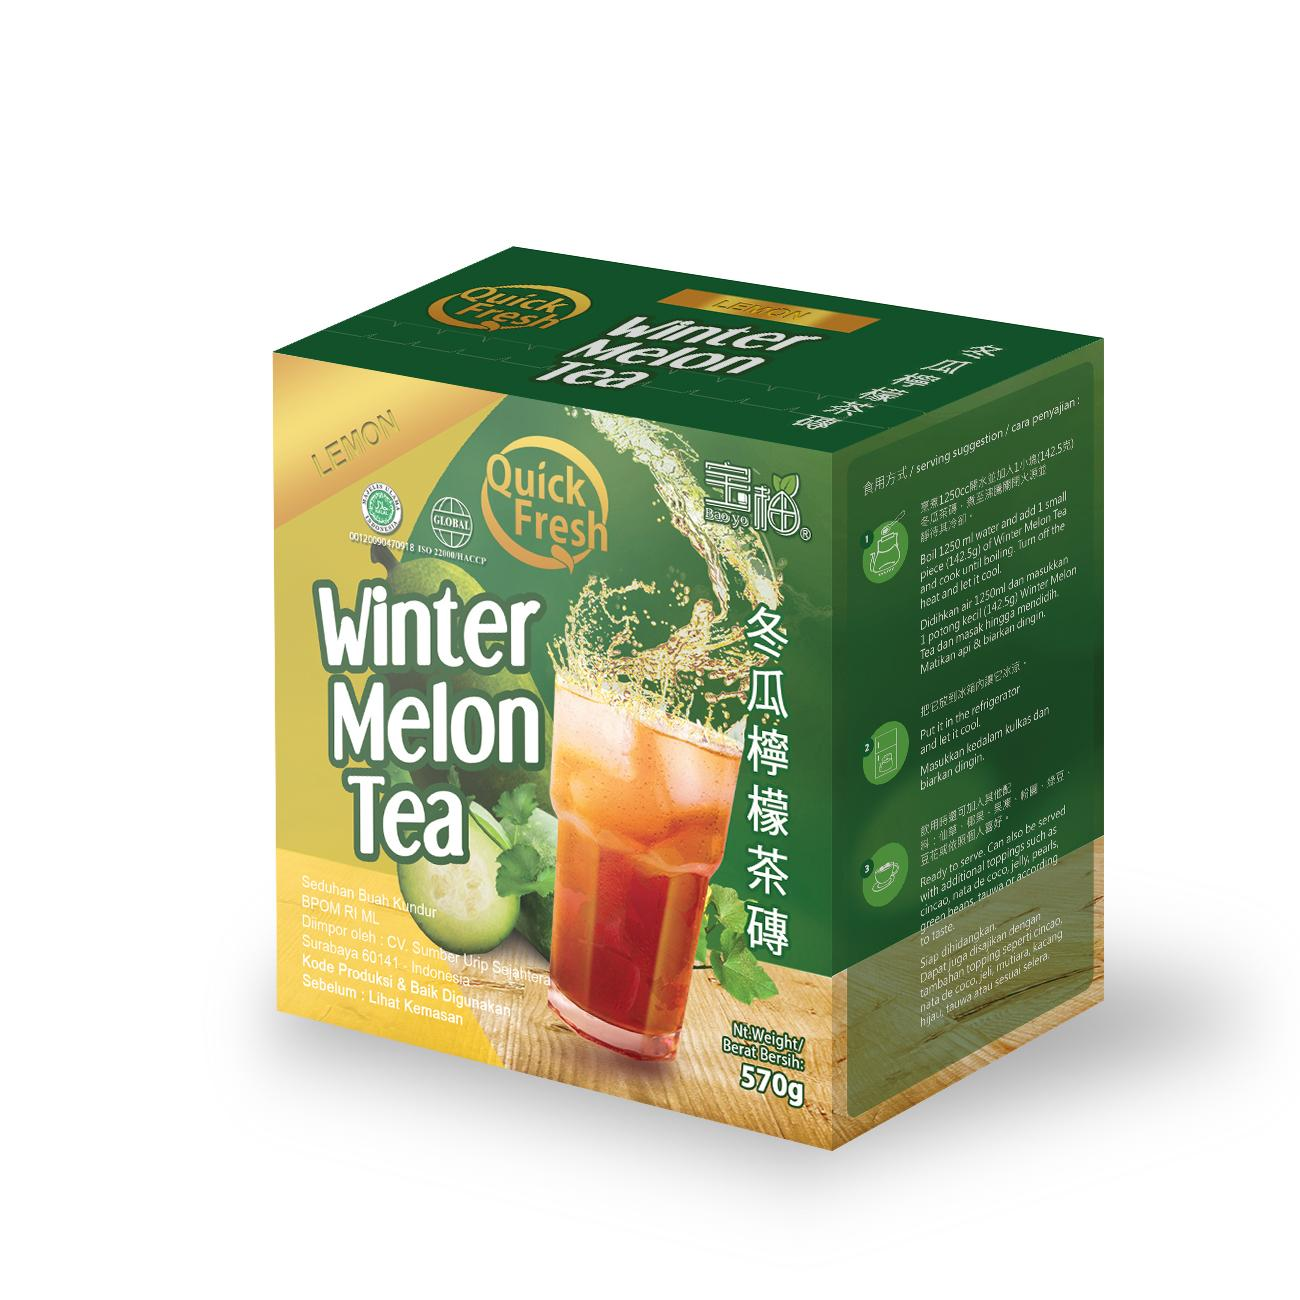 Quick Fresh Winter Melon Tea Lemon Box 570 gr Inter Buana Mandiri